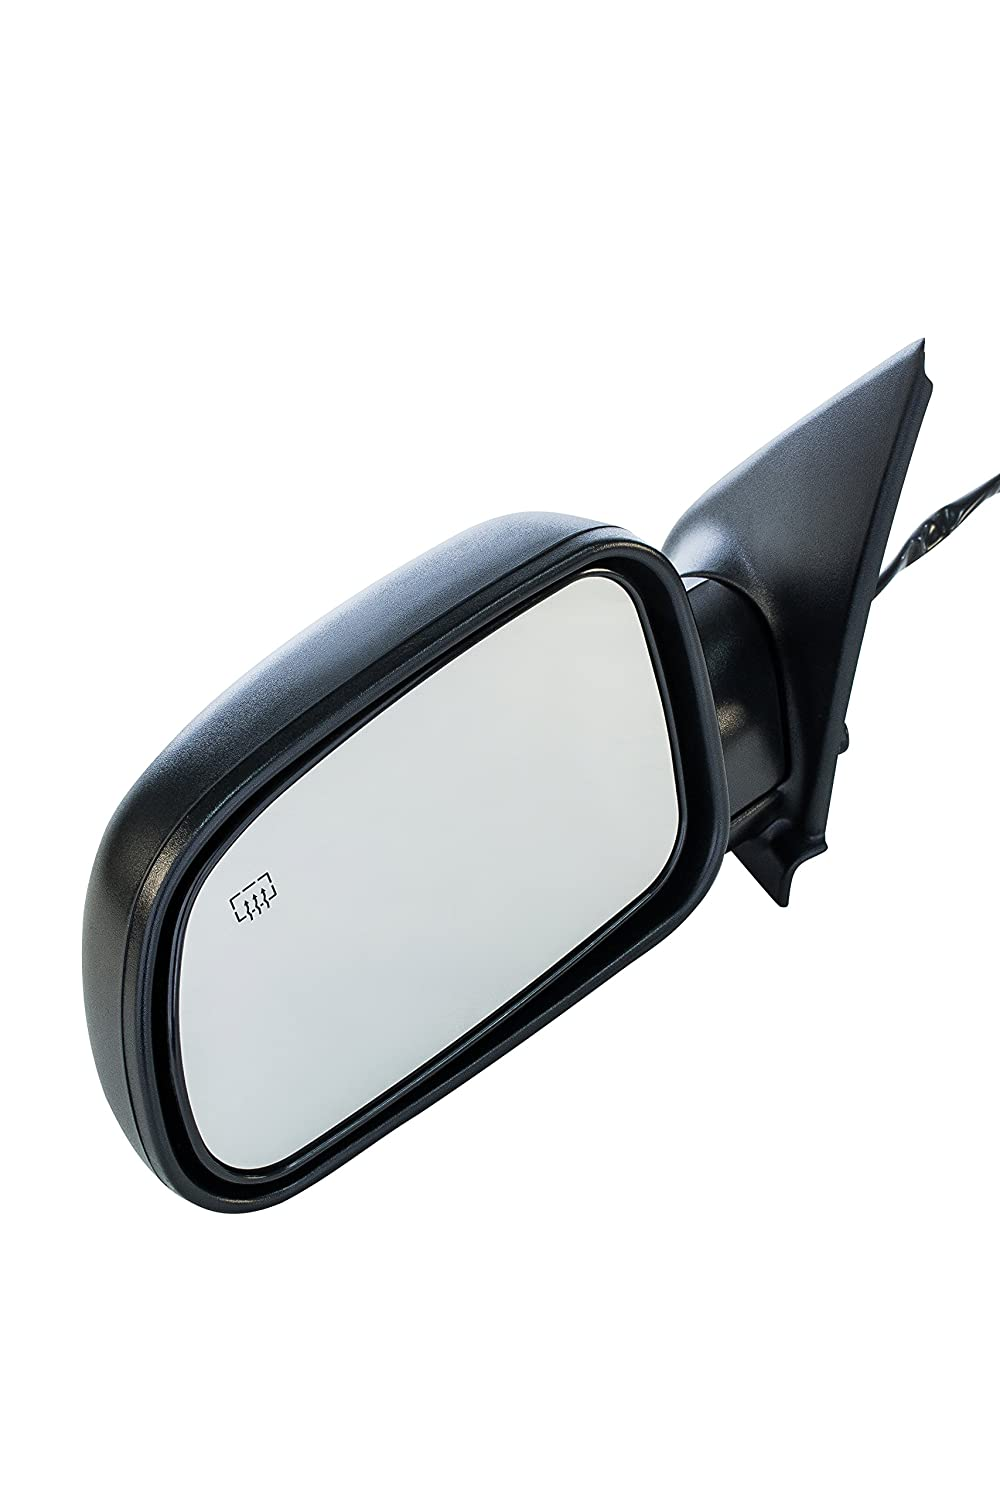 Passenger Side Textured Heated Side View Mirror for 1999-2004 Jeep Grand Cherokee